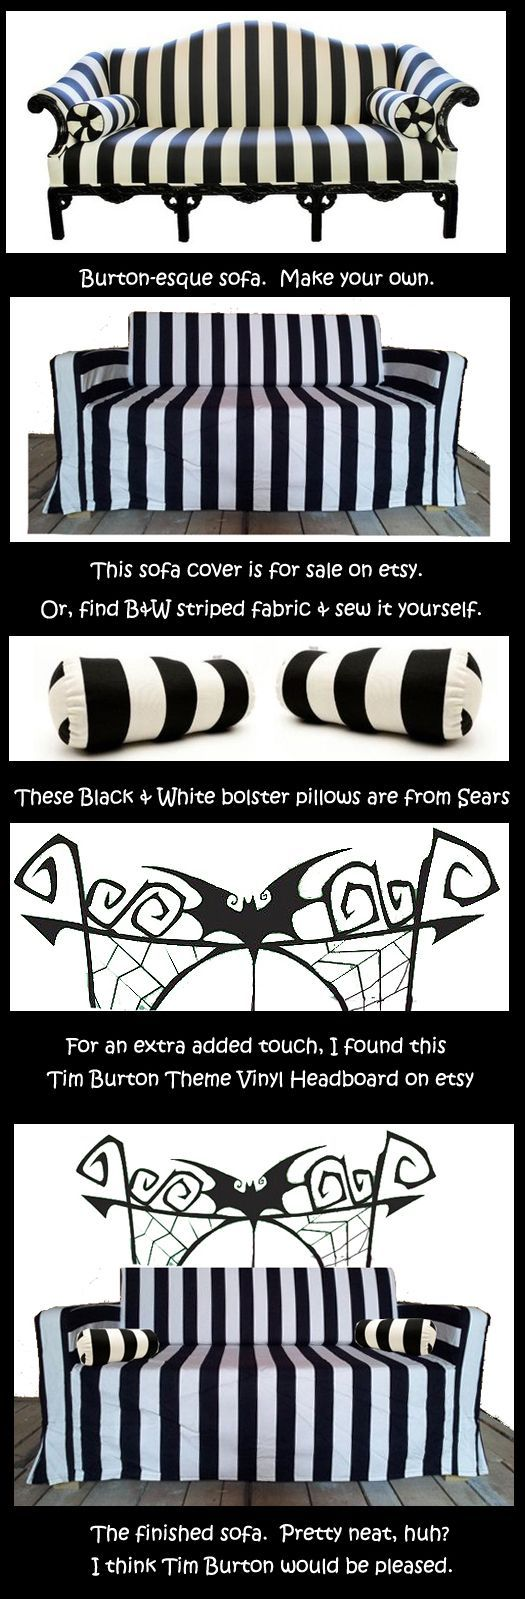 Make your own Burton-esque sofa! Tim Burton Sofa Couch -- you could use it year-round! Or, at least during